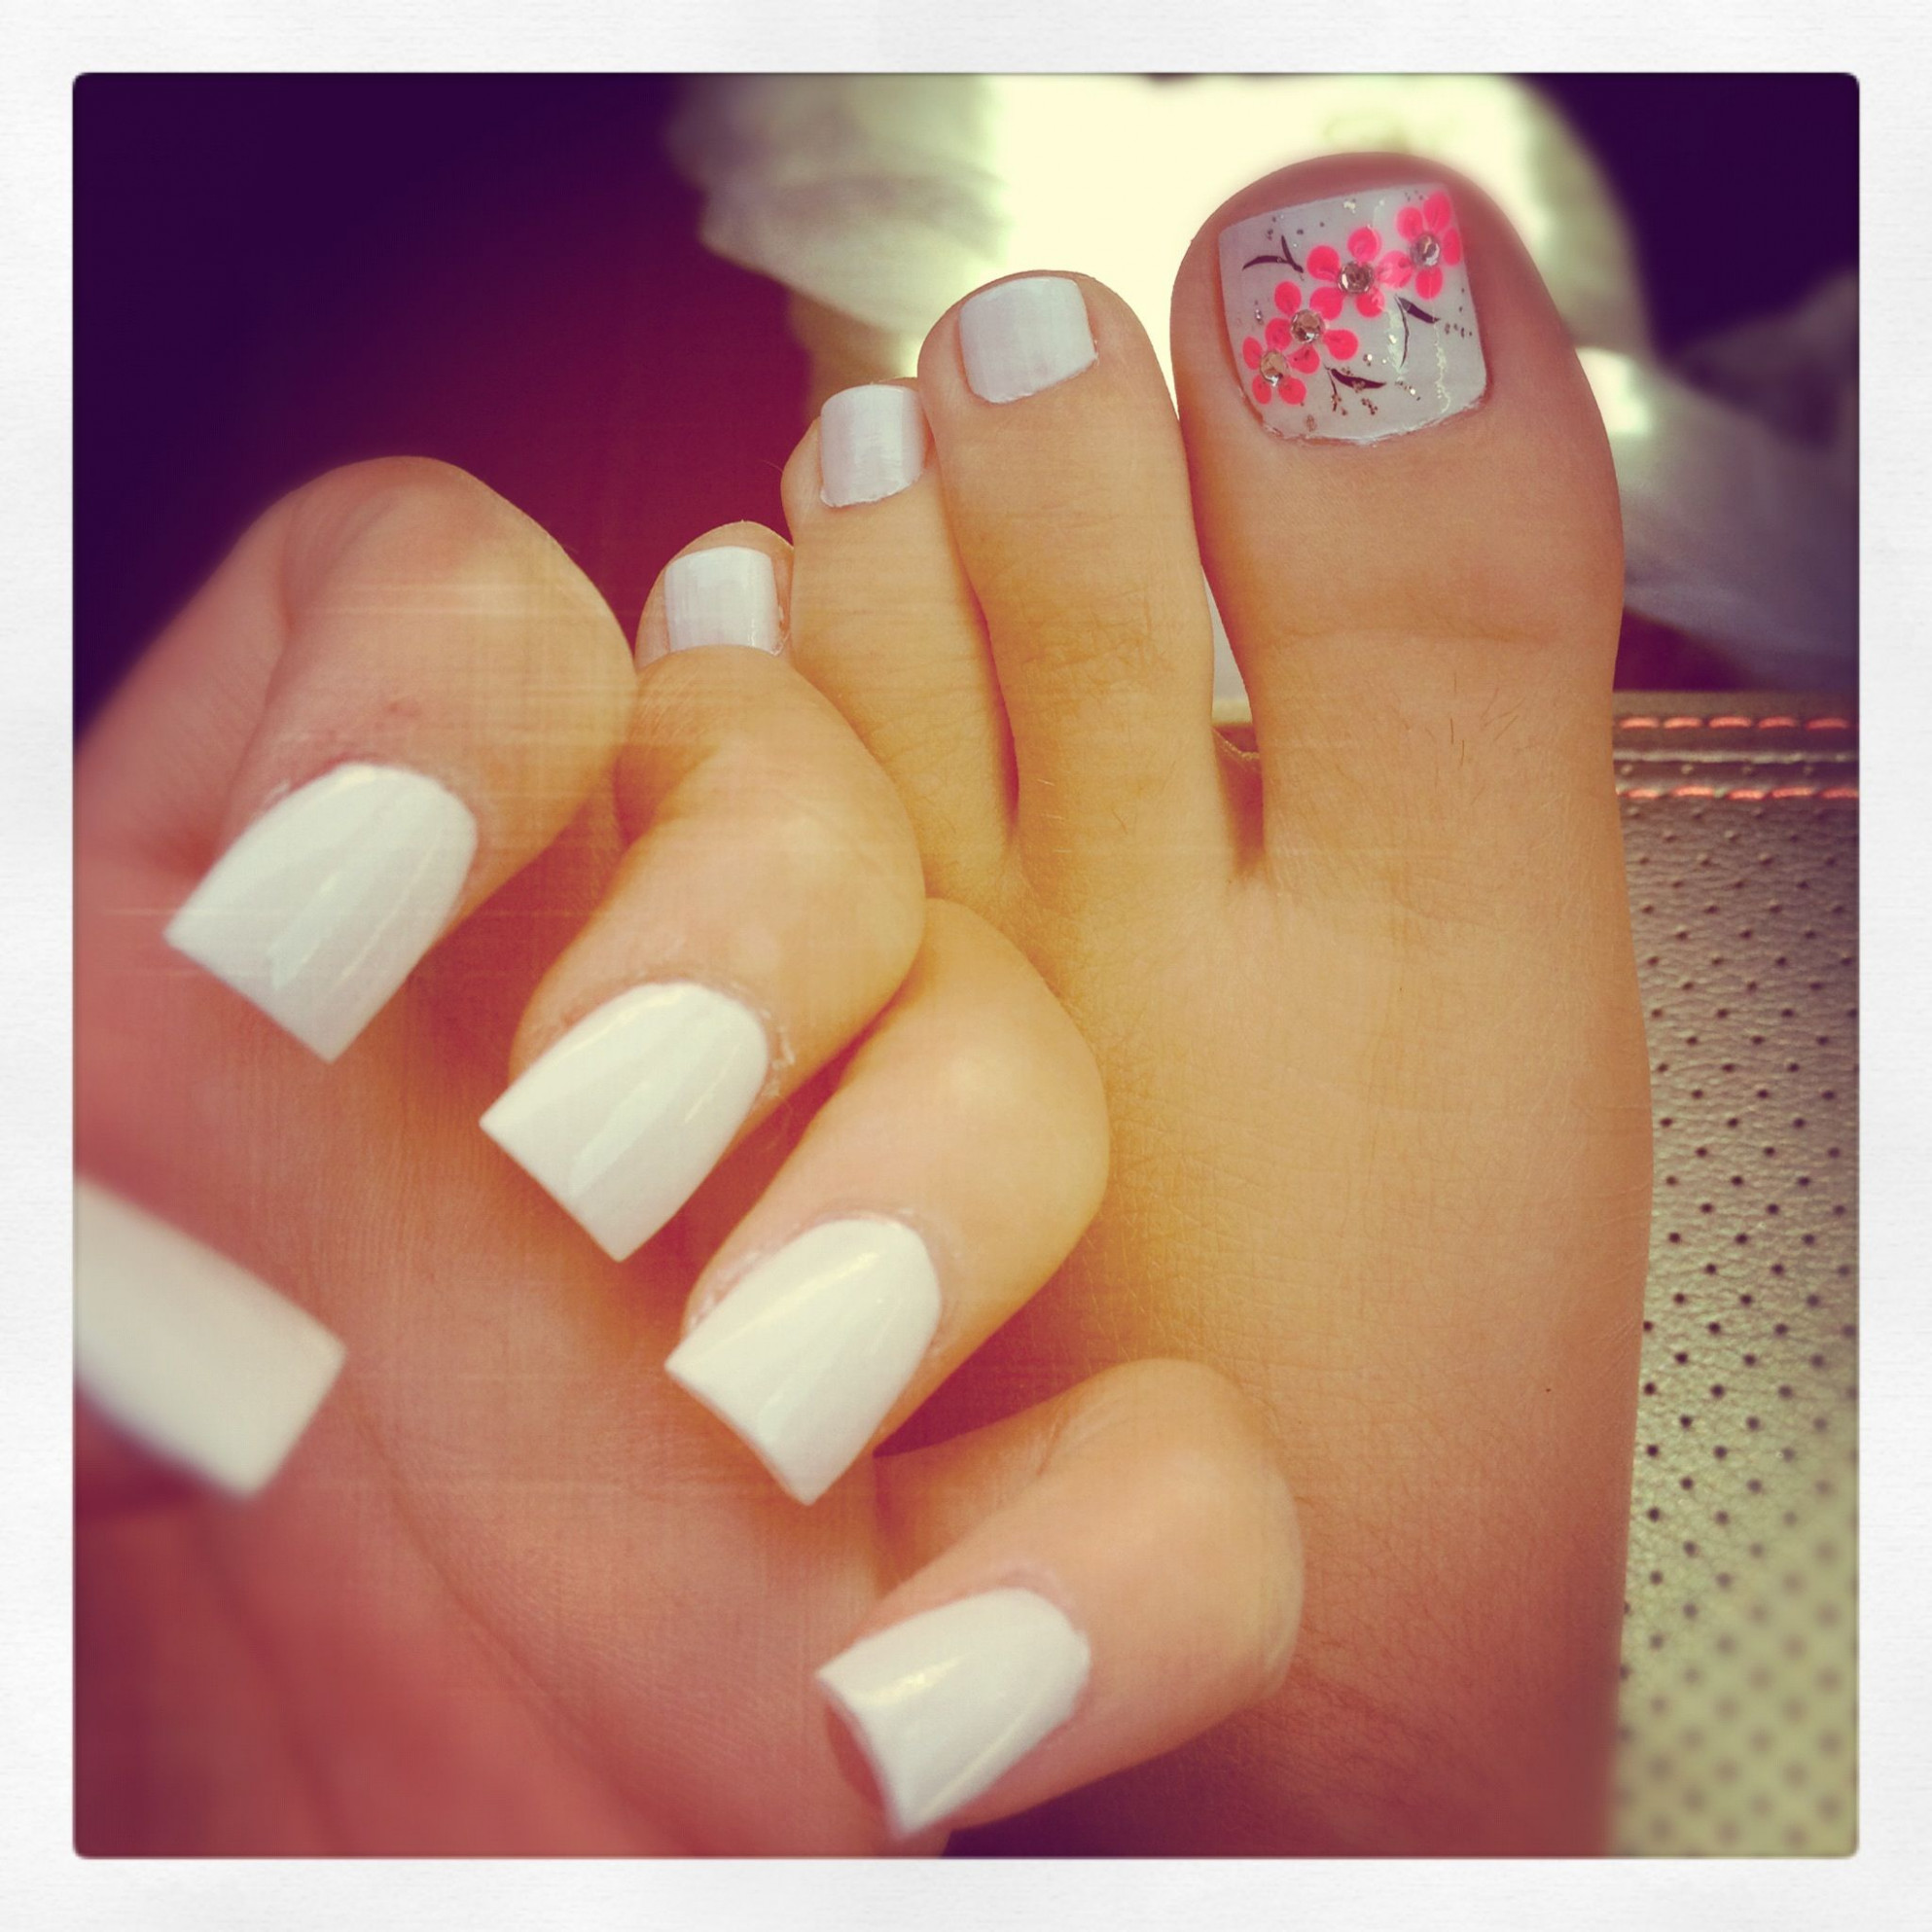 Pin by Marie-Jo BALEIA on Everything  Toe nail designs, Toe nails